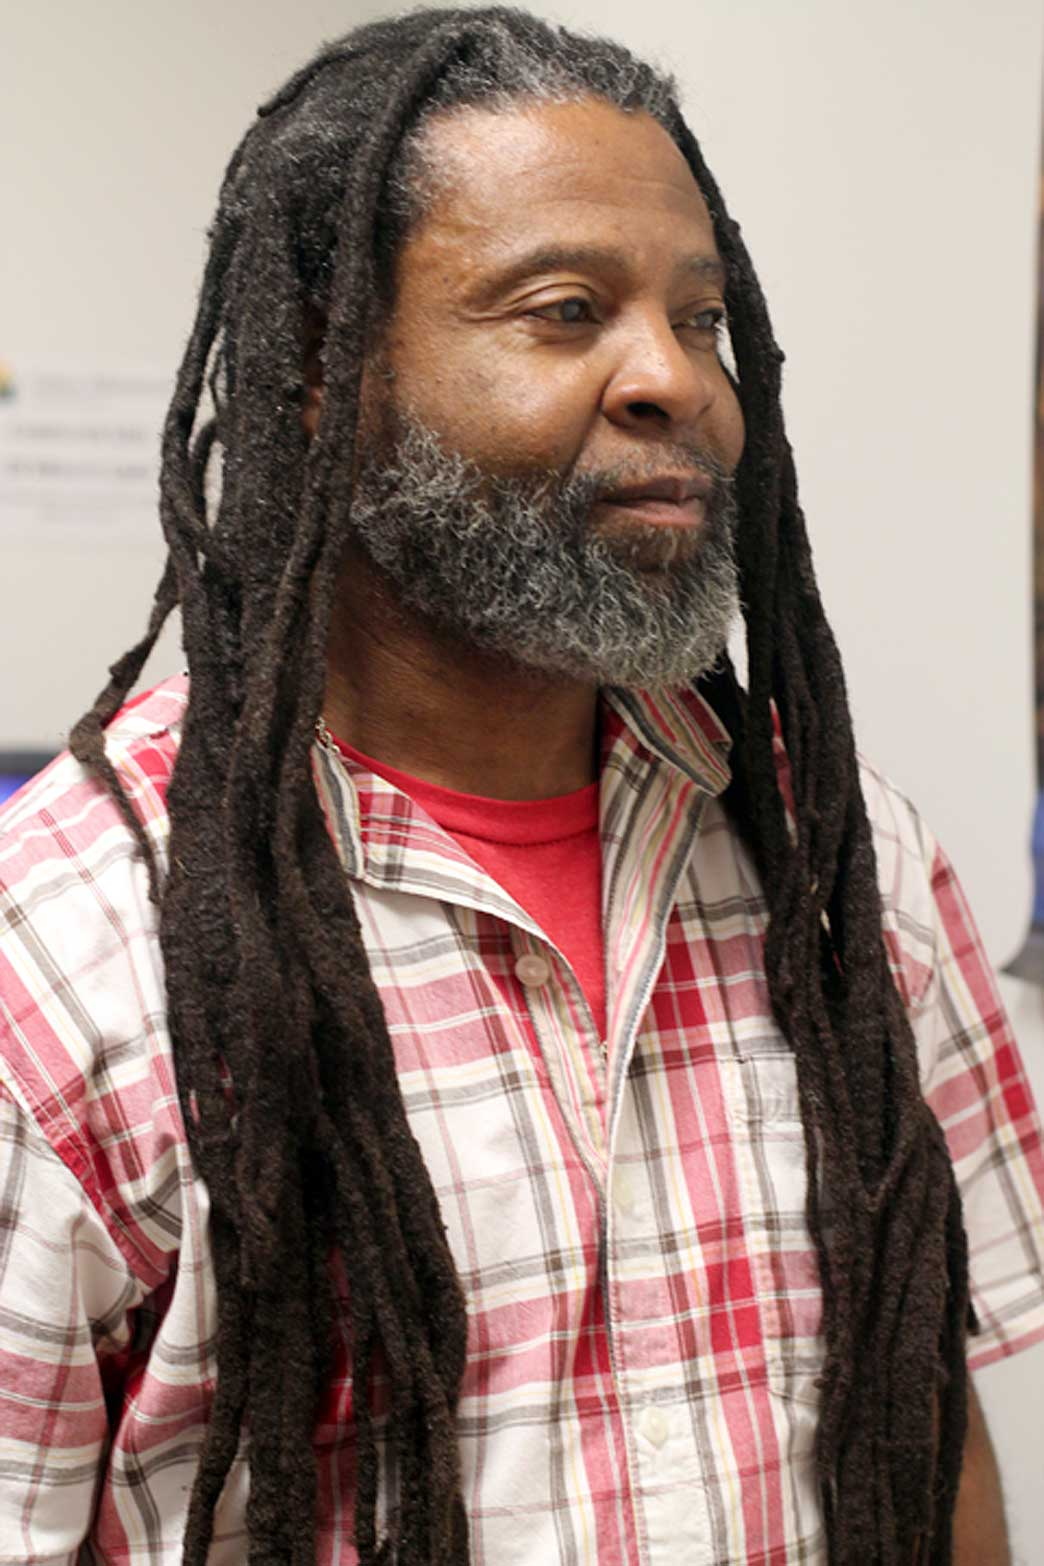 Malcolm Clemens has battled addiction since the 1980s. He graduates from the Urban Ministries Recovery Program in May. Photo by Alex Sampson